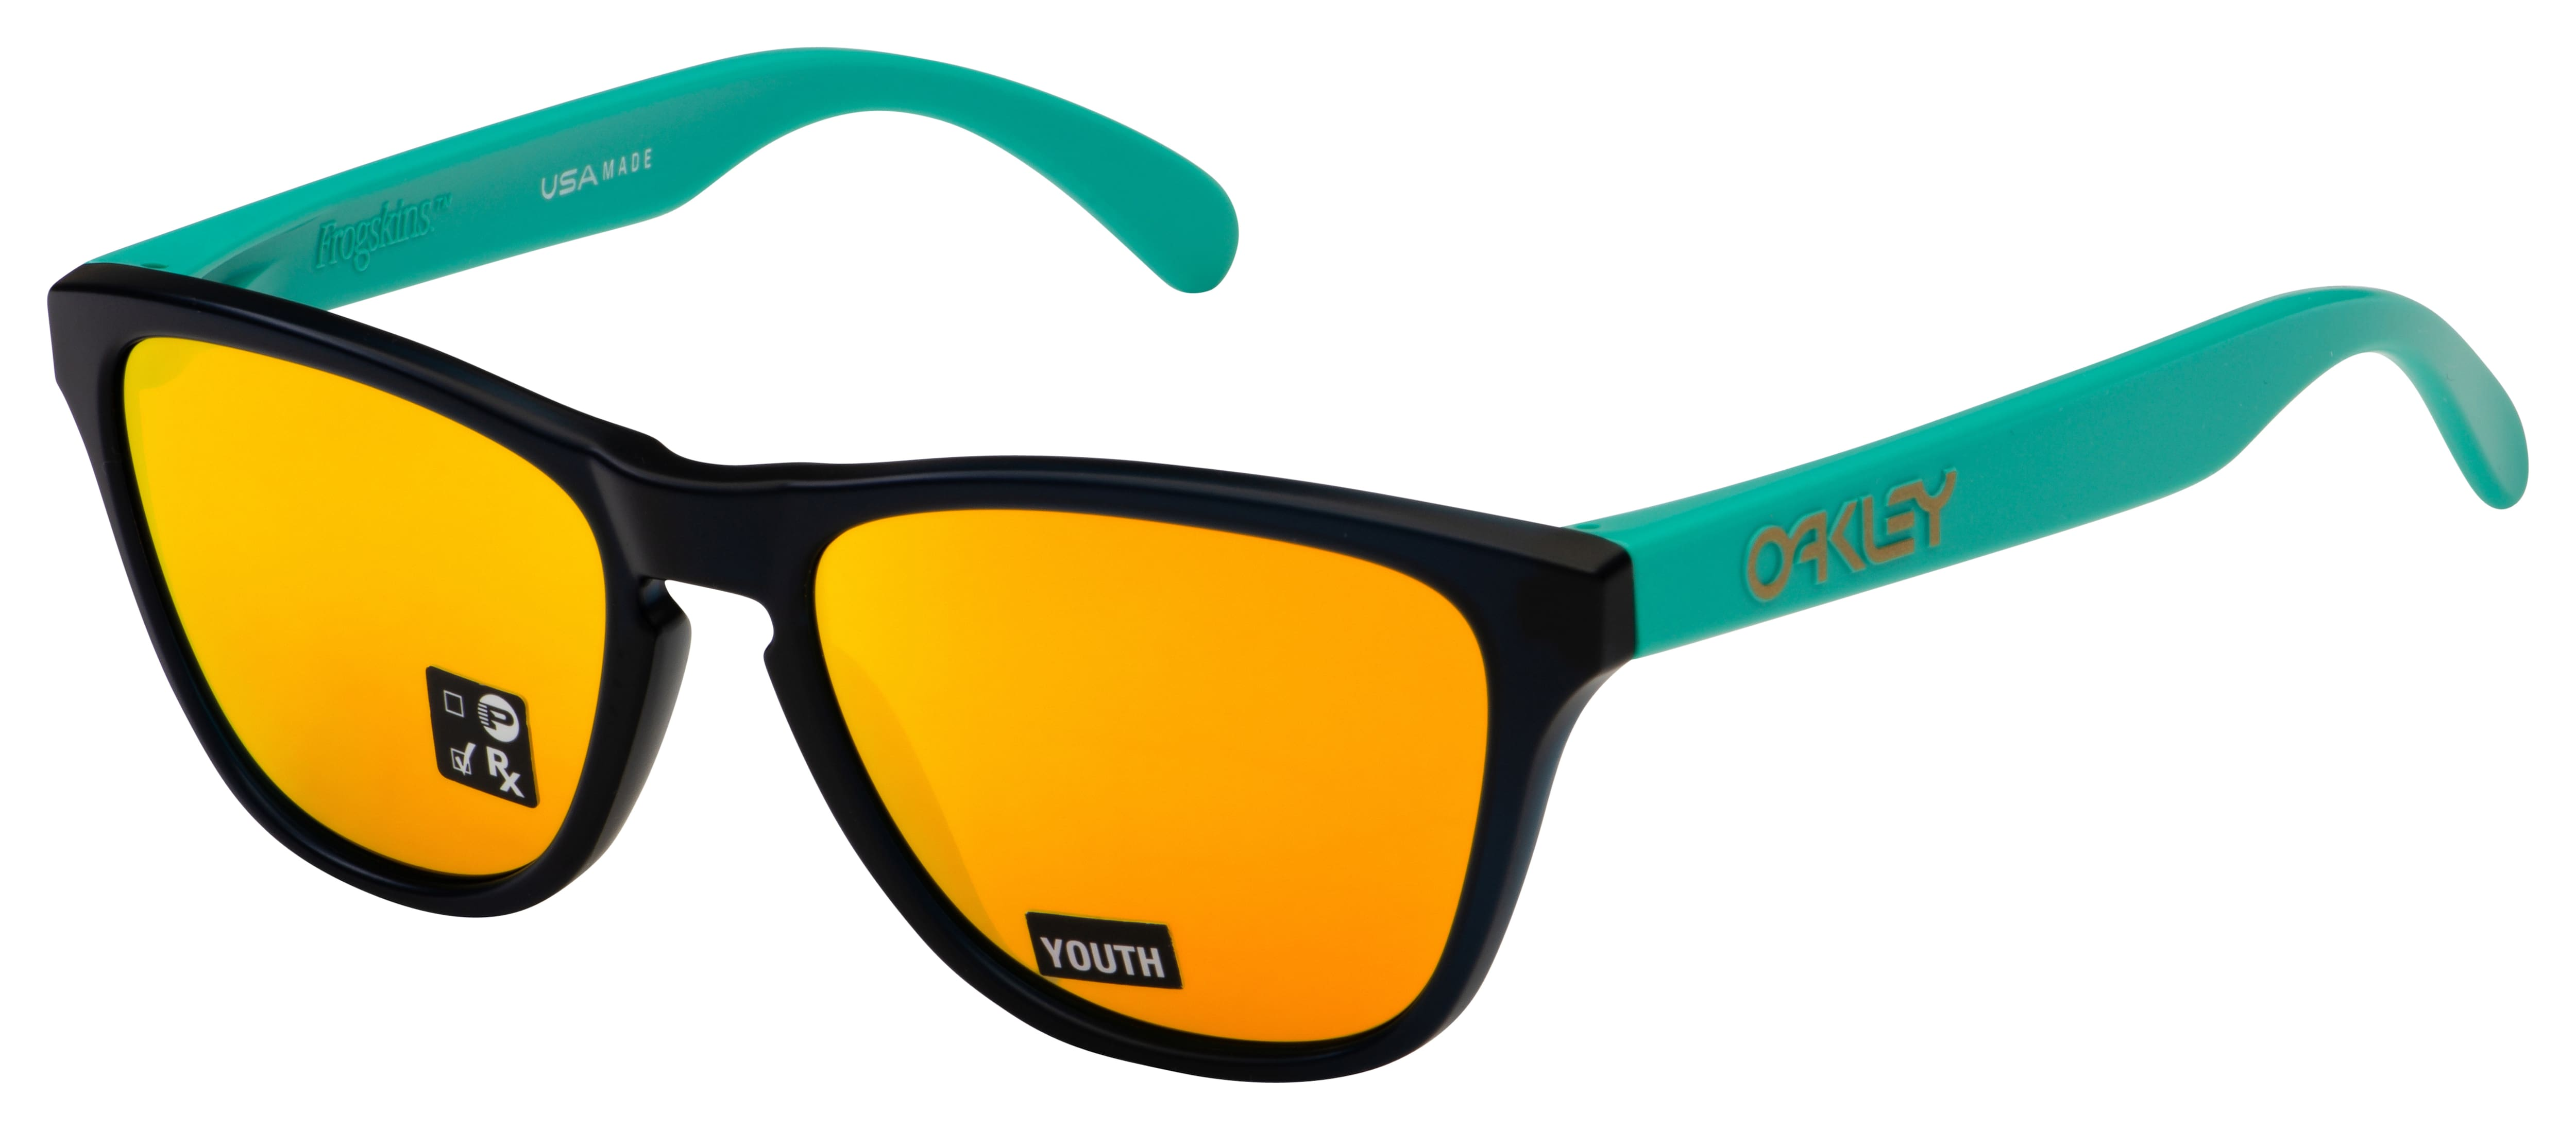 Sunglass Outlet Ray Bans and Oakleys Sunglasses for $54.99+ *Free Shipping on $65+ orders*